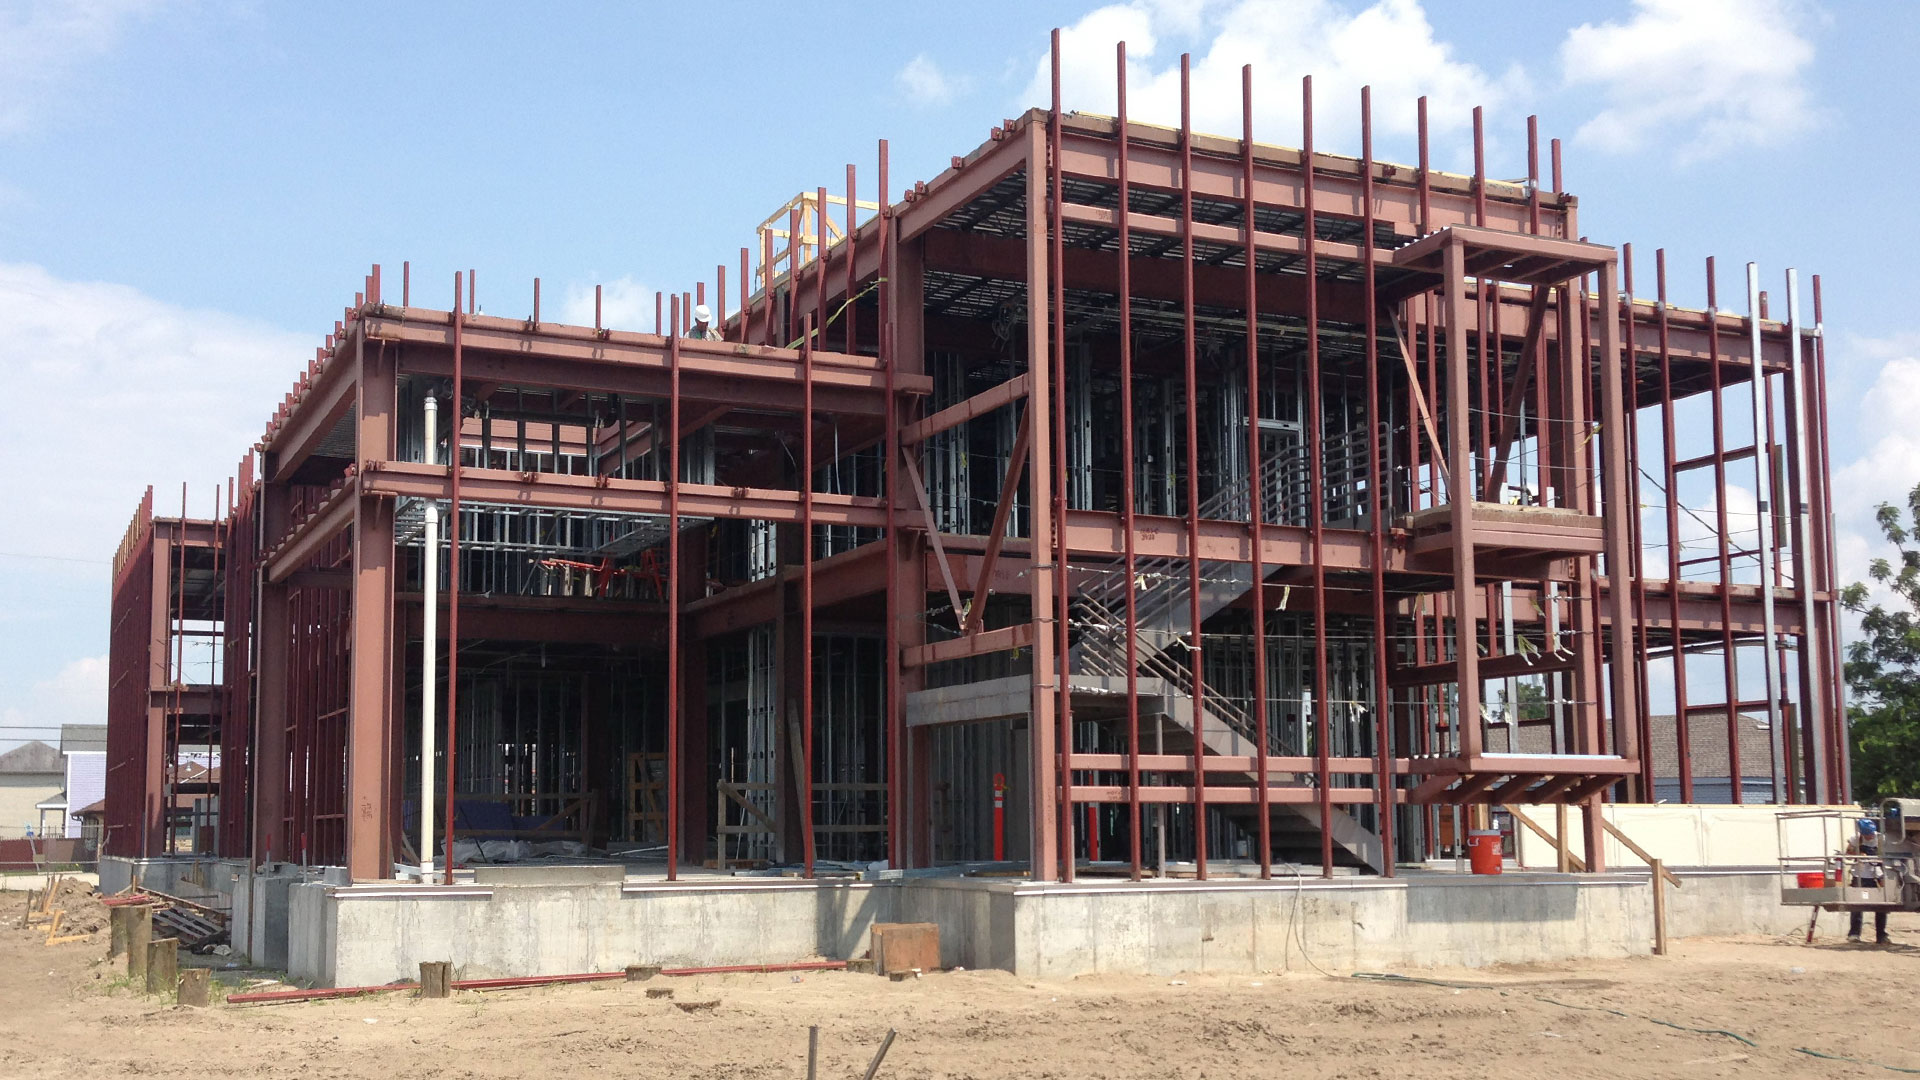 Construction Engineering Building And Home New Orleans Civil Engineer Structural Engineer And